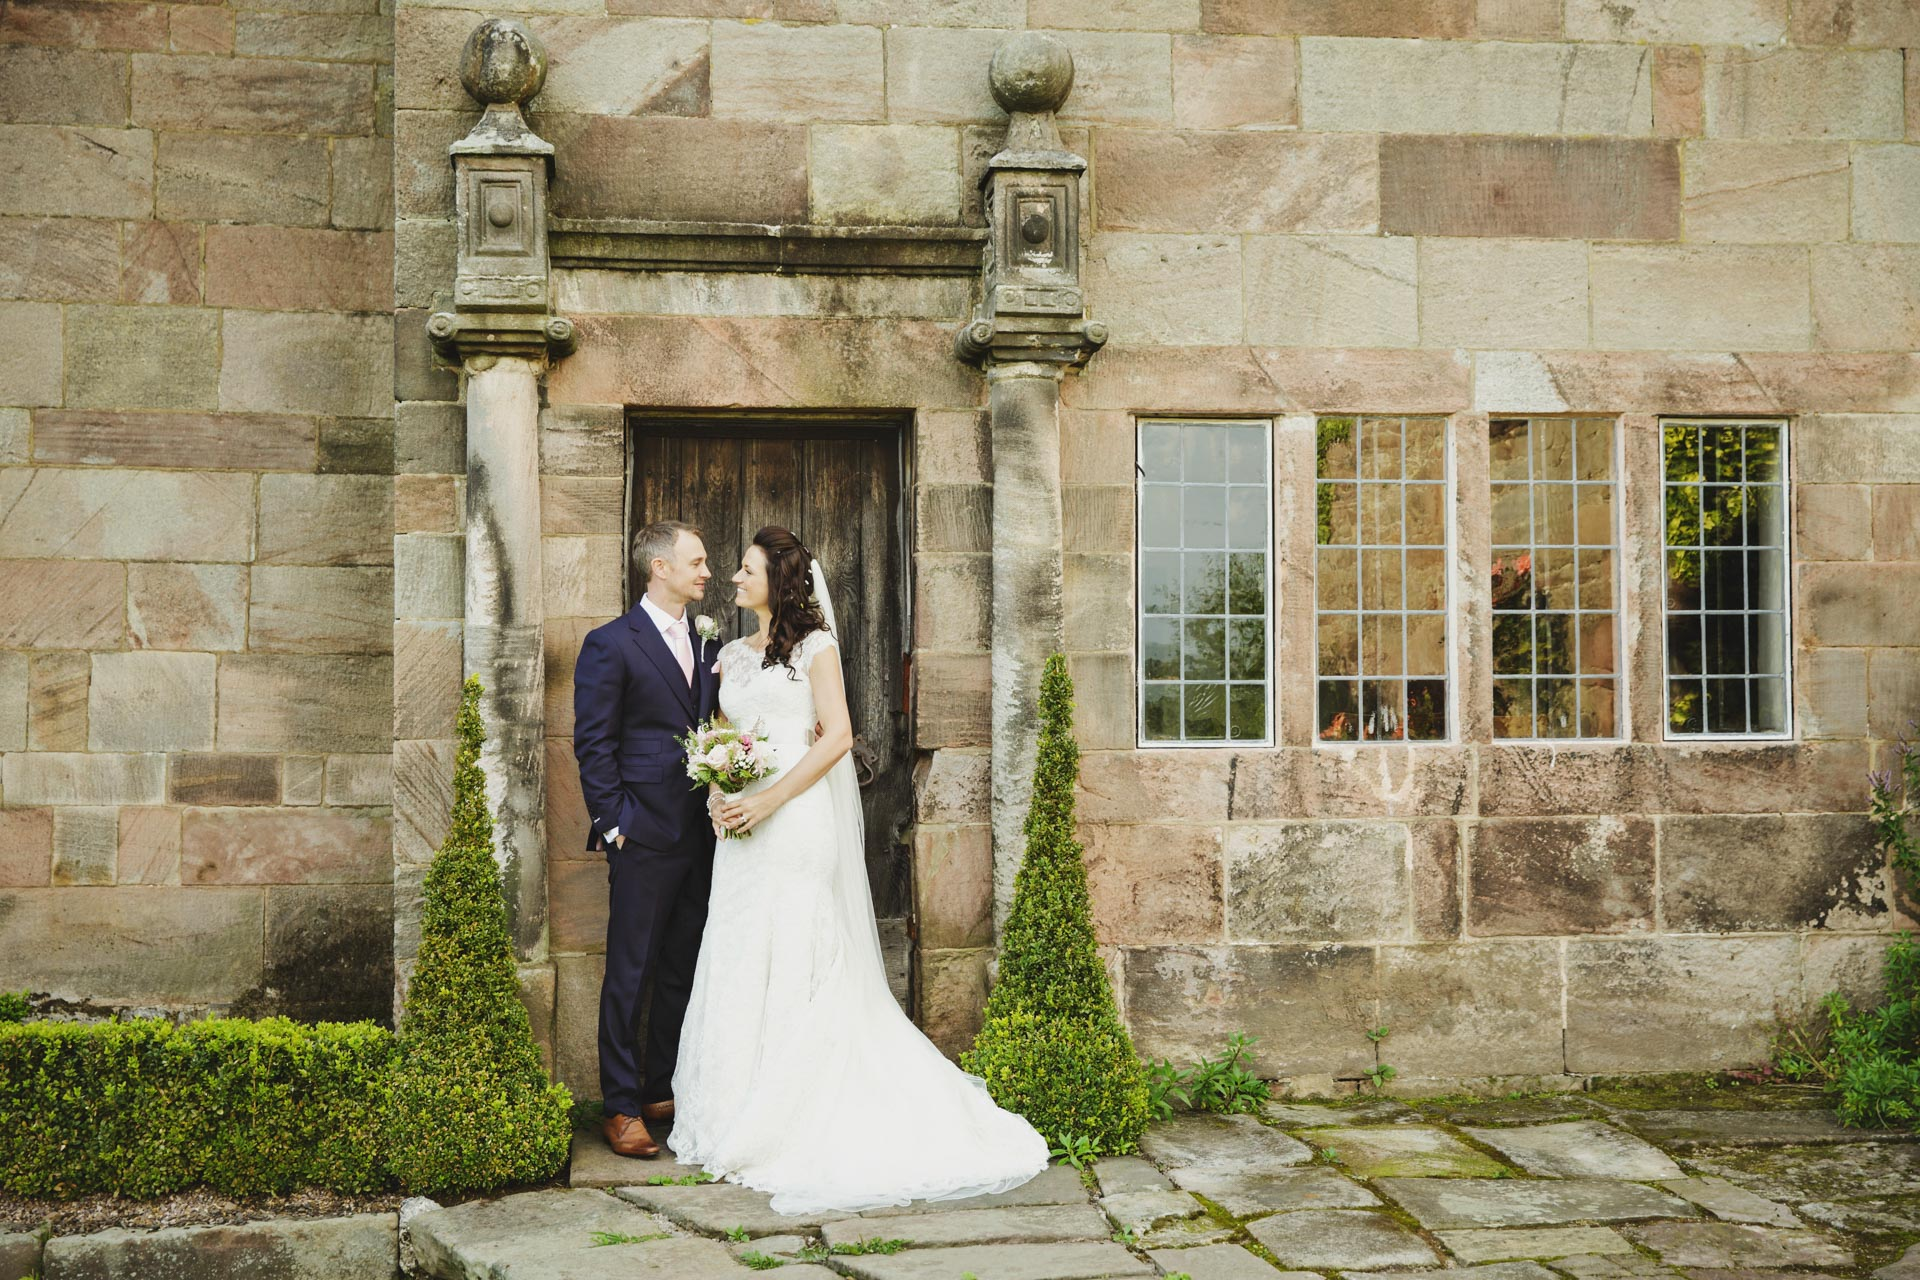 2017-WEDDING-portfolio-gemmawilliamsphotography_647.jpg